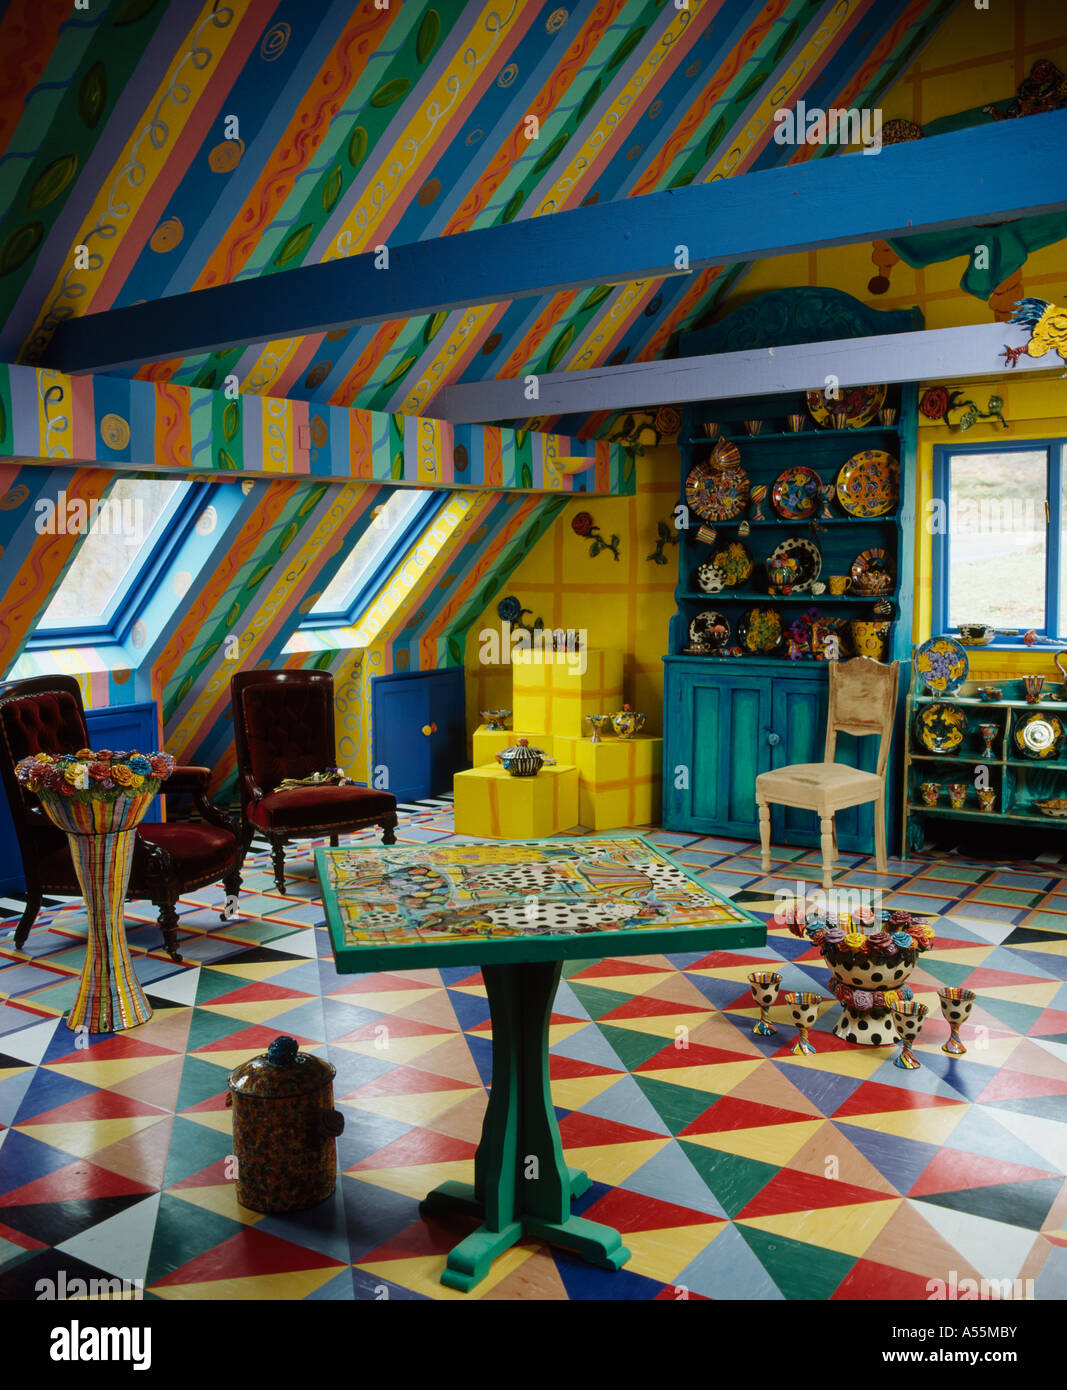 Colourful Living Room With Striped Ceiling And Multicoloured Painted  Chequerboard Floor In Loft Conversion